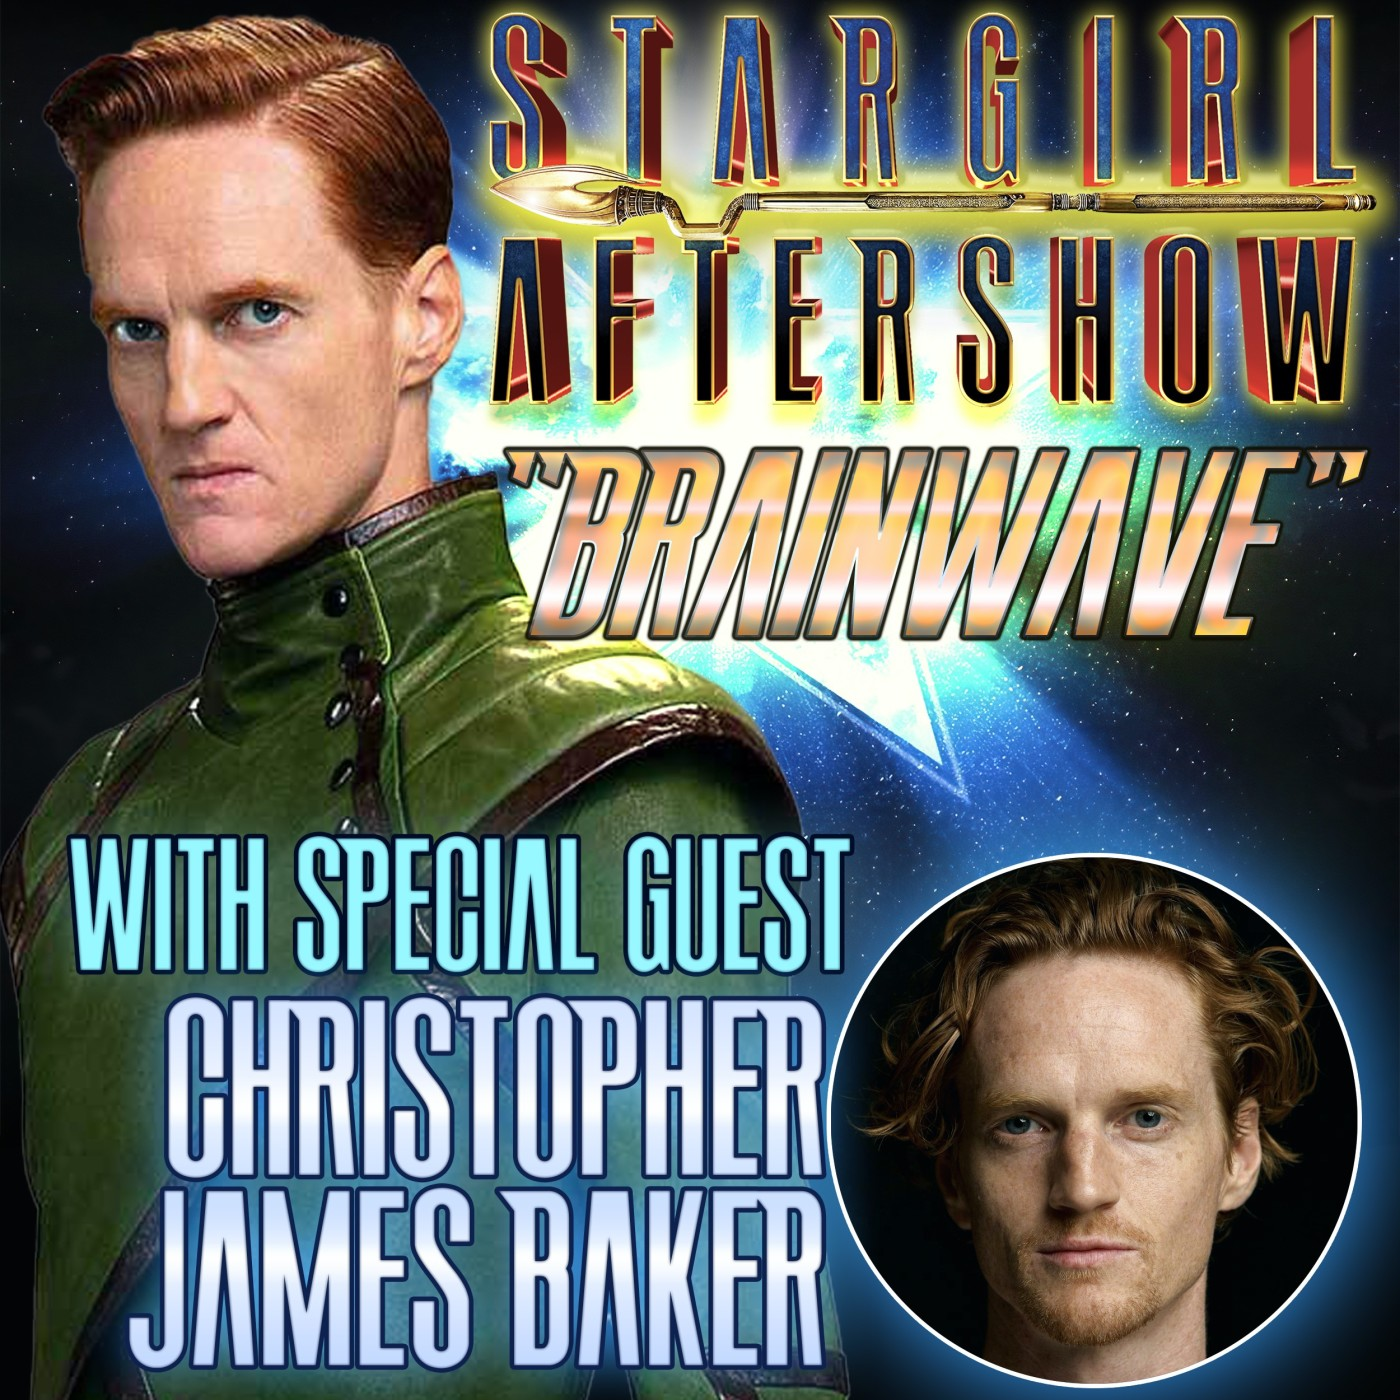 """Brainwave"" with guest CHRISTOPHER JAMES BAKER"